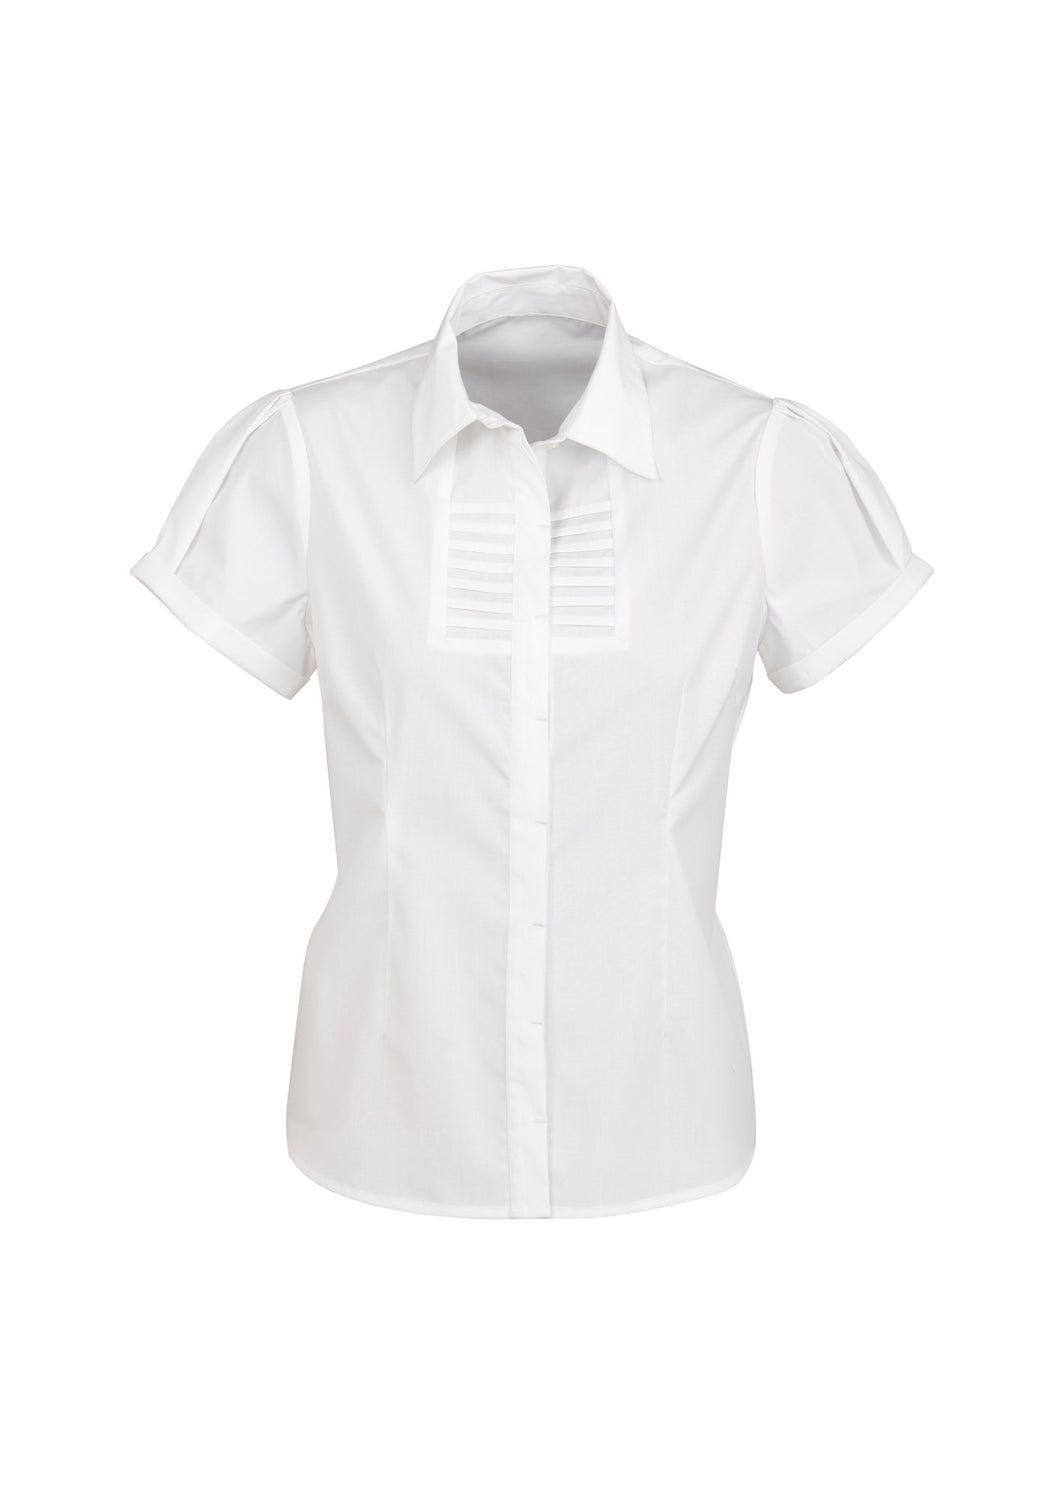 Munich Ladies Short Sleeve Blouse White - Solomon Brothers Apparel